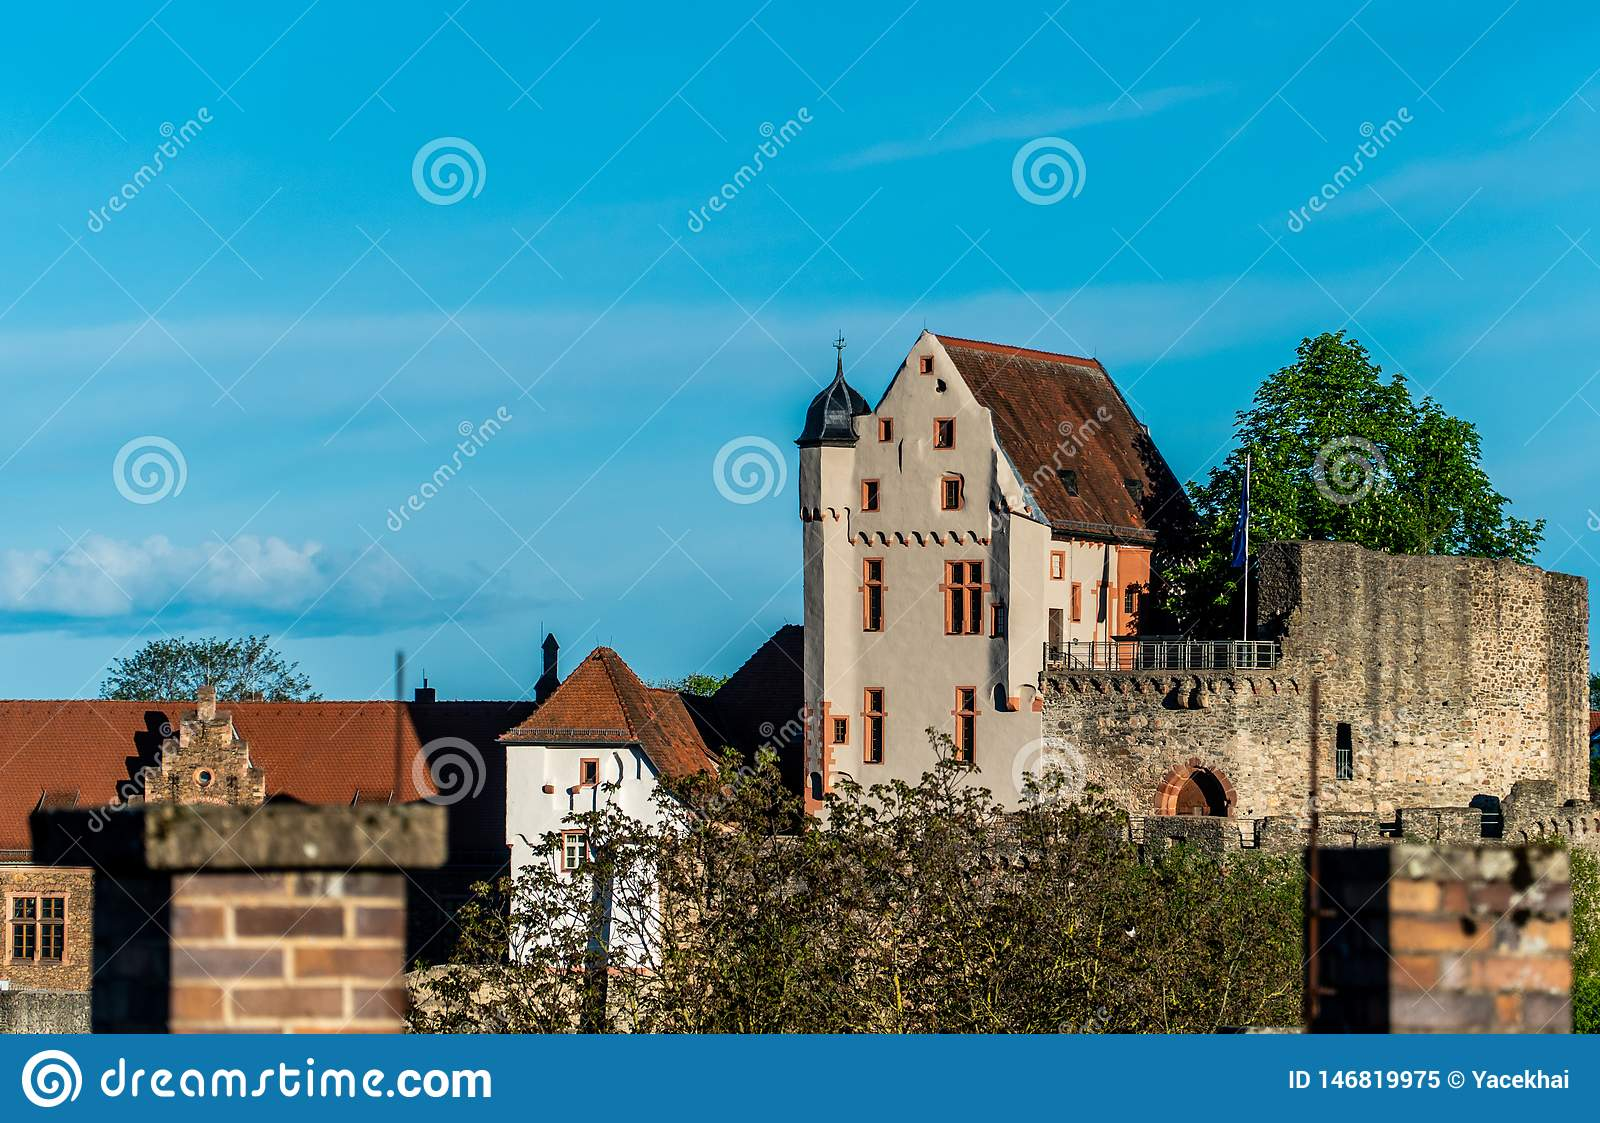 Bavarian monumens. Knight`s castle. A medieval castle on the hill.